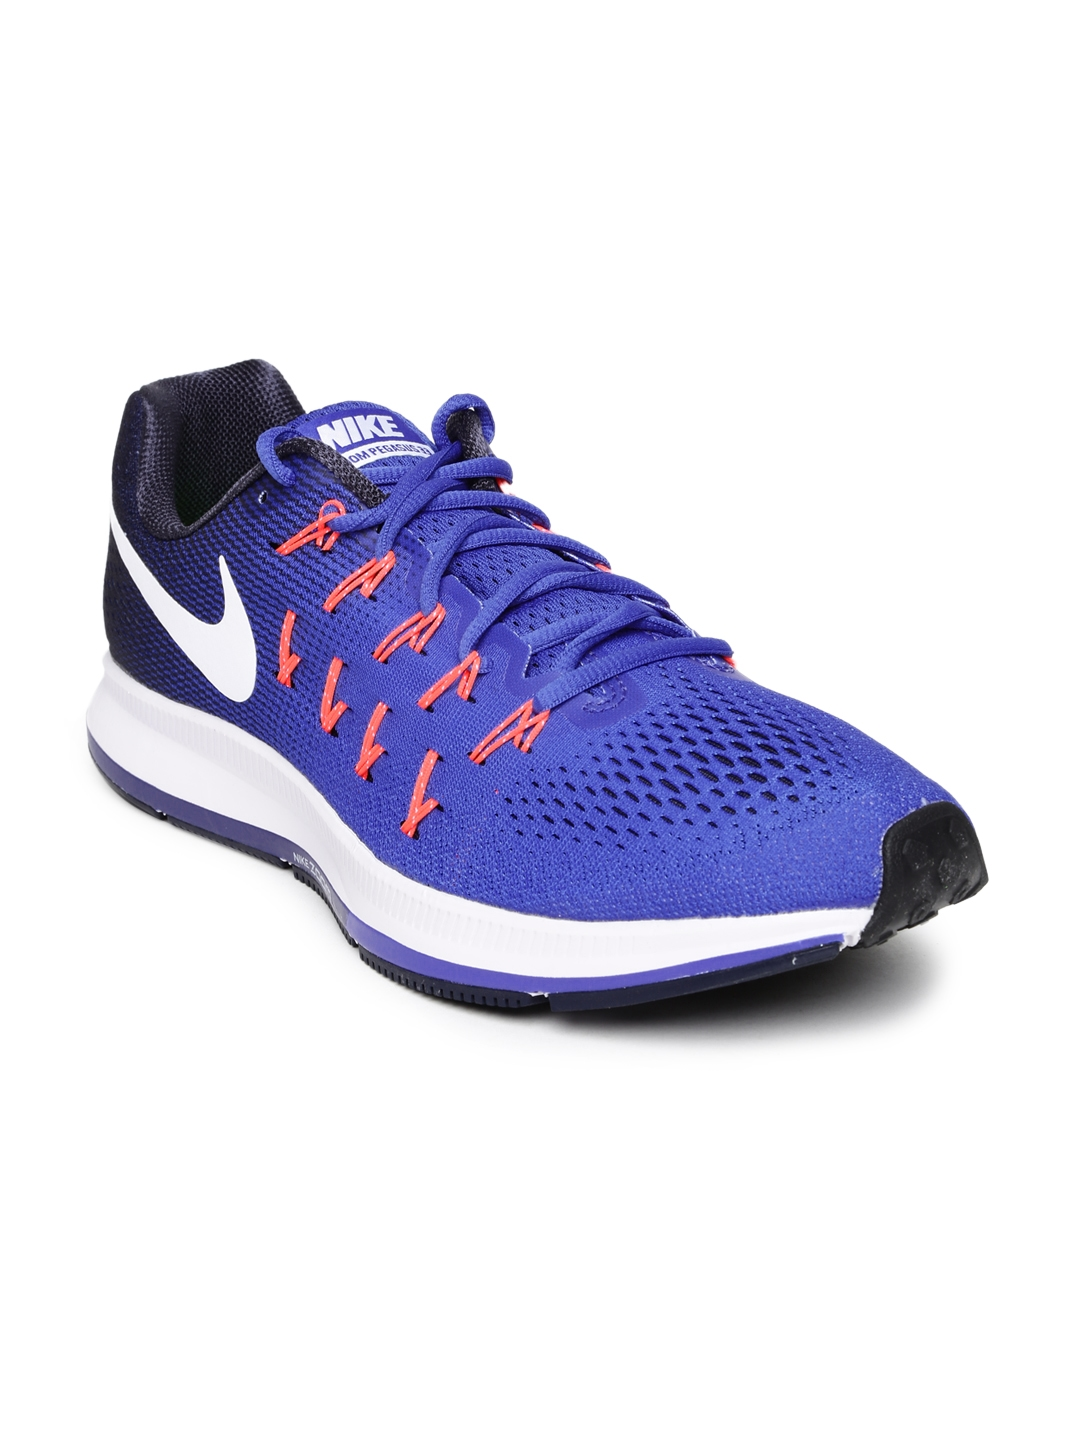 d59900fa2fc Buy Nike Men Blue Air Zoom Pegasus 33 Running Shoes - Sports Shoes ...